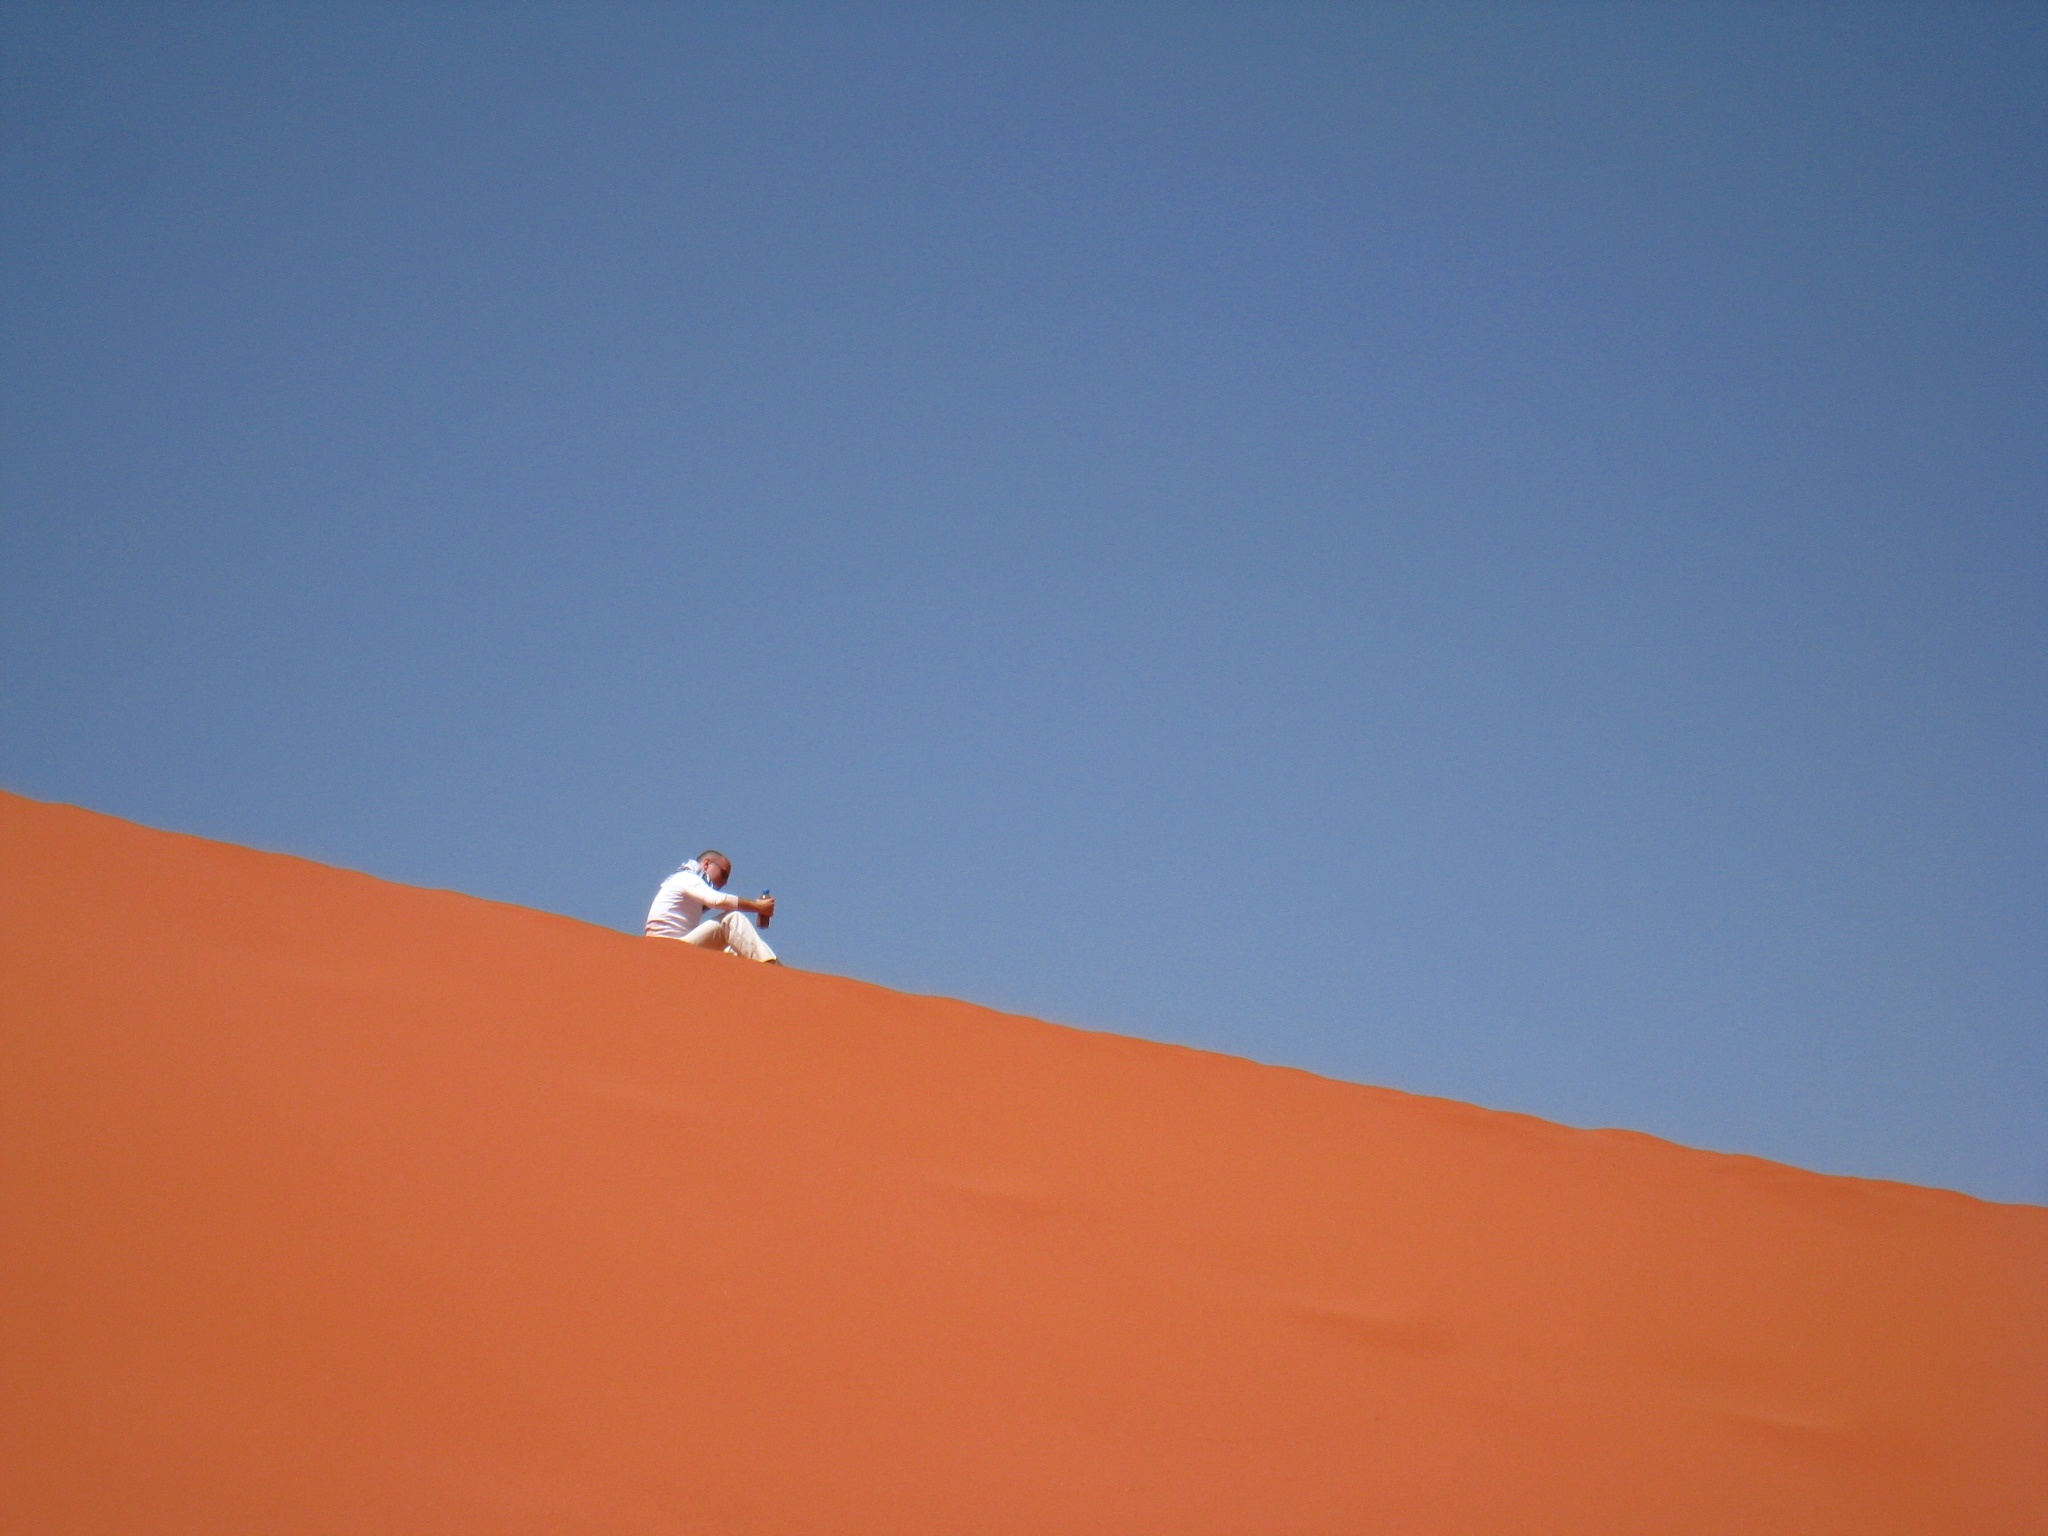 Voyager seule - Alone in the Wadi Rum